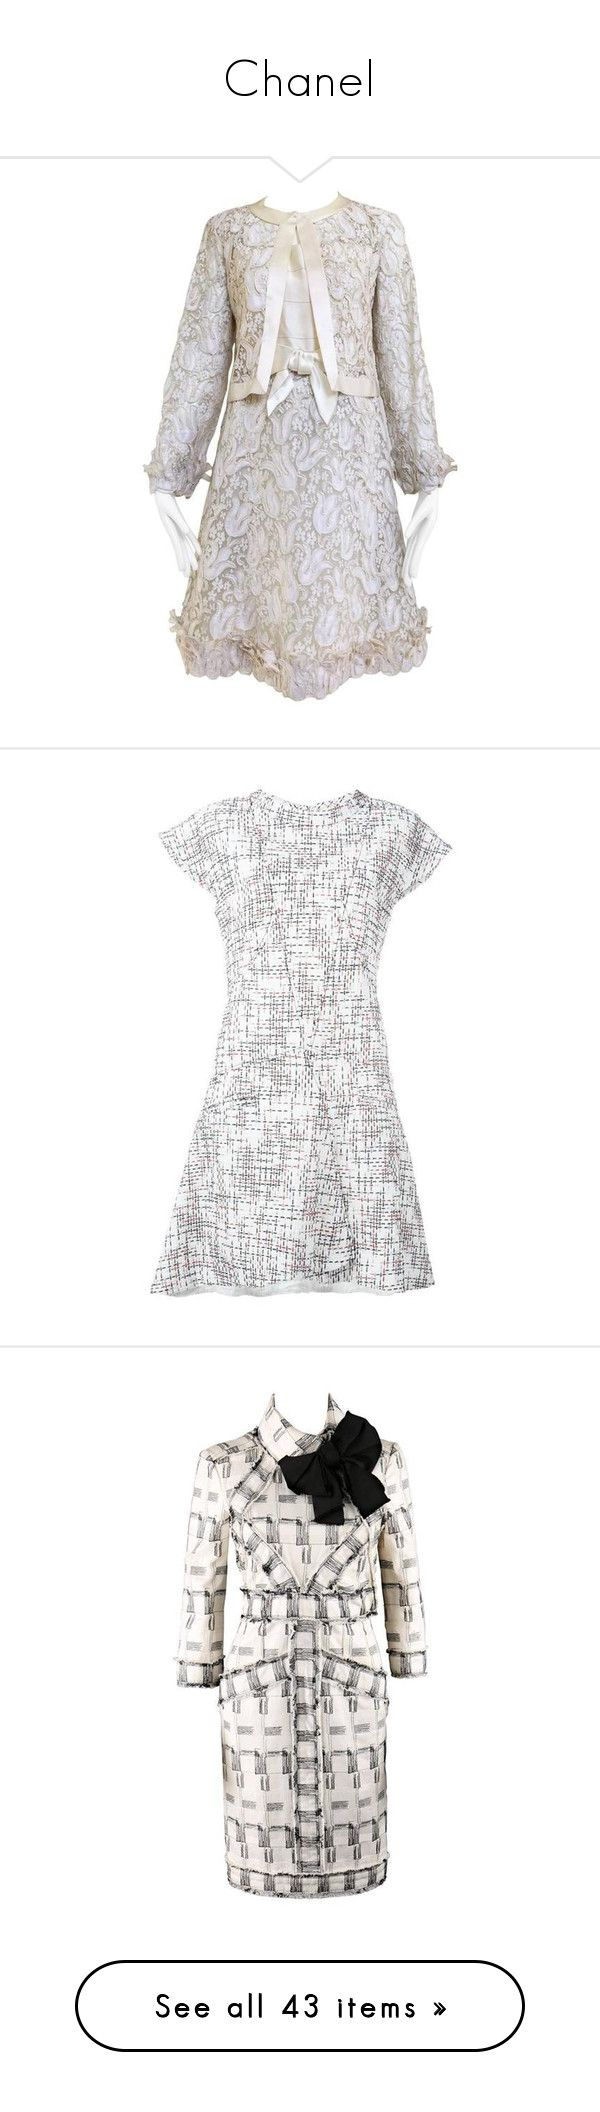 """""""Chanel"""" by arantxaherrera ❤ liked on Polyvore featuring dresses, cocktail dresses, grey, gray dress, gray lace dresses, vintage lace dress, cutout dresses, shirred lace dress, casual dresses and short gray dress"""